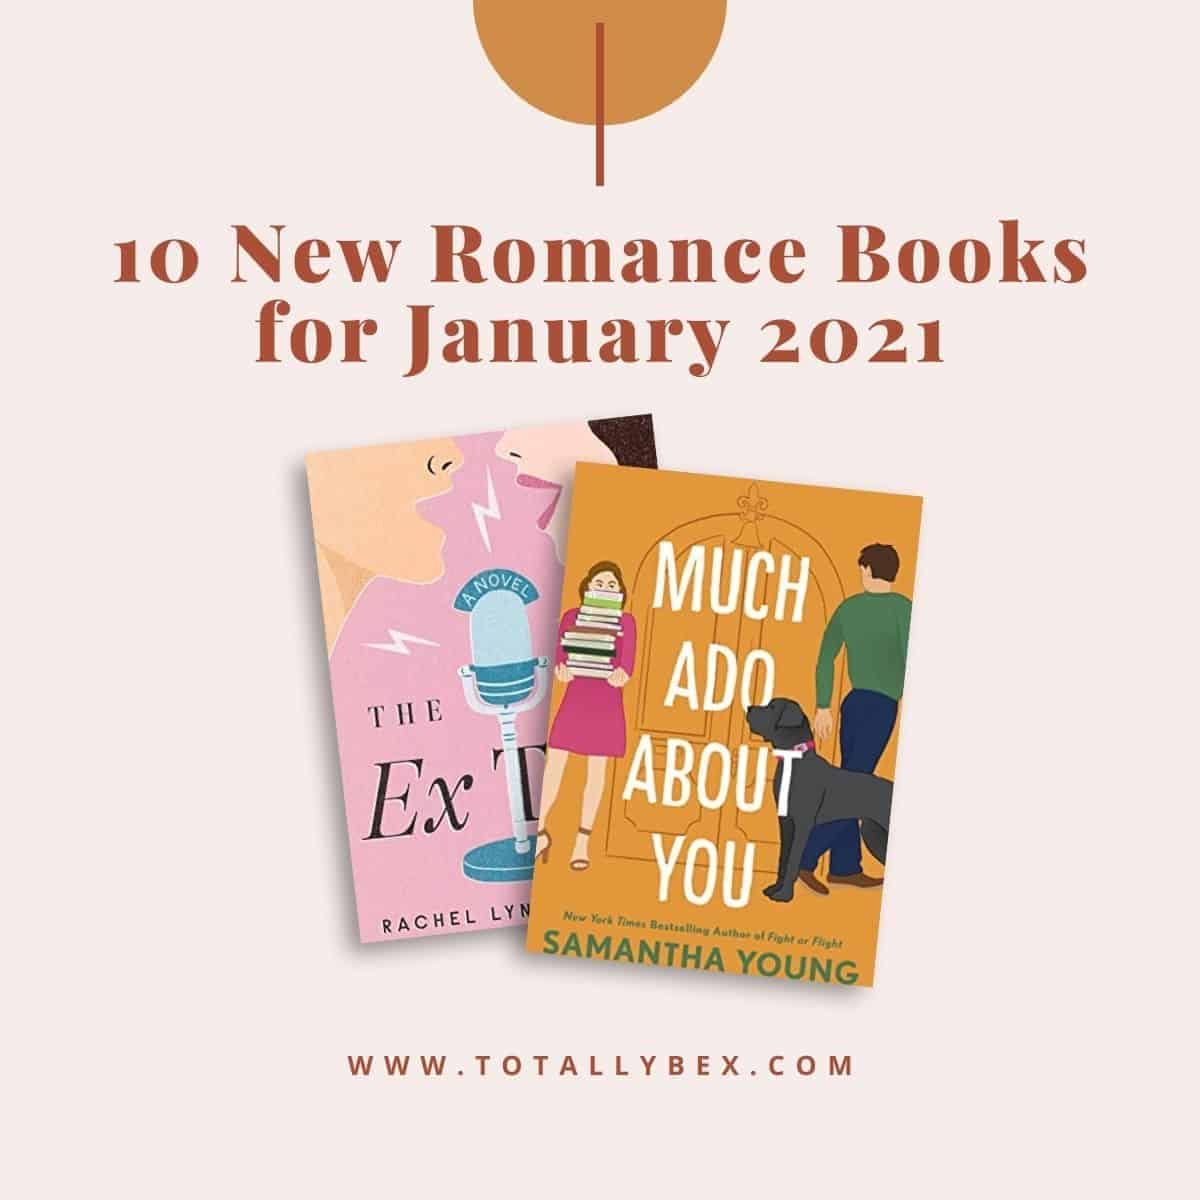 10 New Romance Books for January 2021 is a curated list of contemporary romance novels, historical romance novels, and slow burn romance books releasing in January 2021